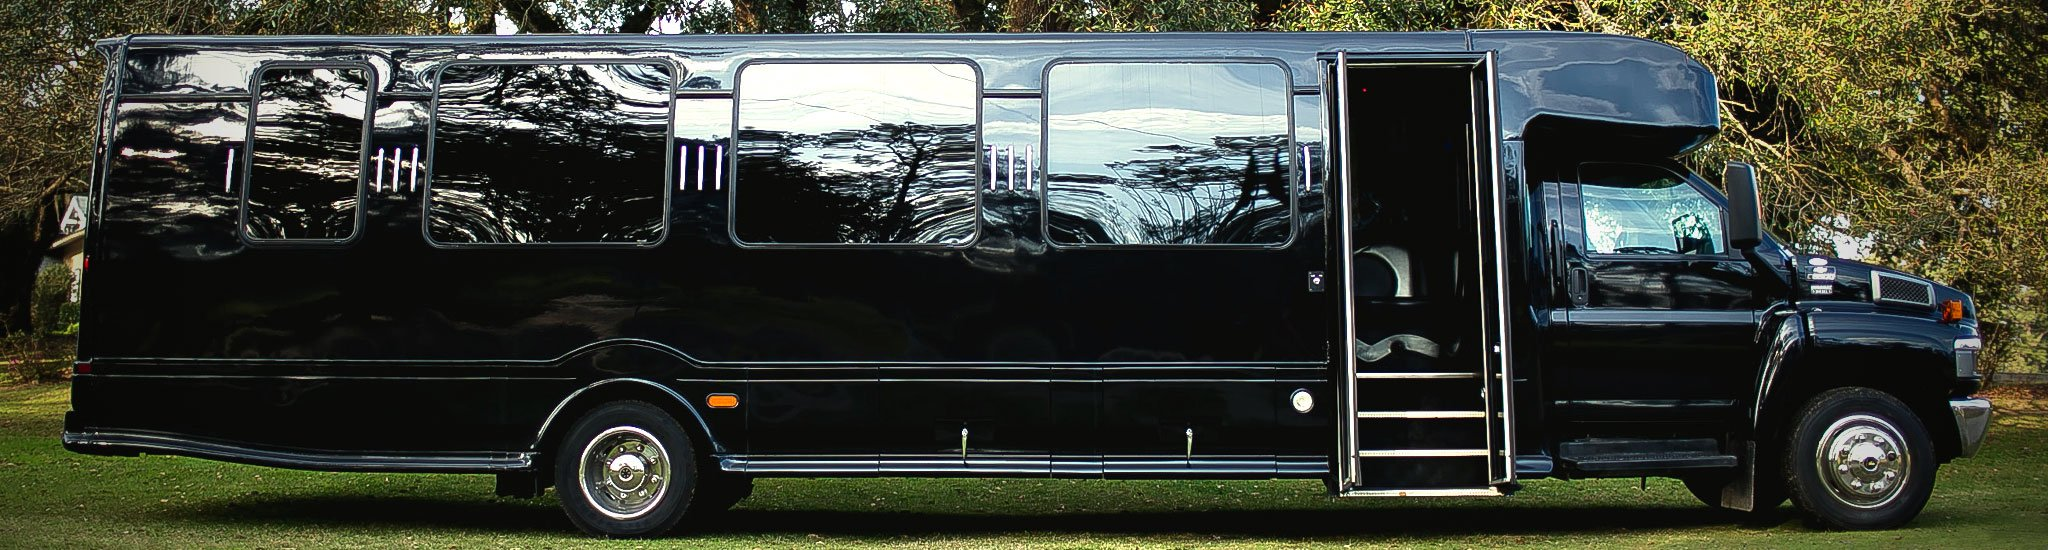 23-passenger Party Bus